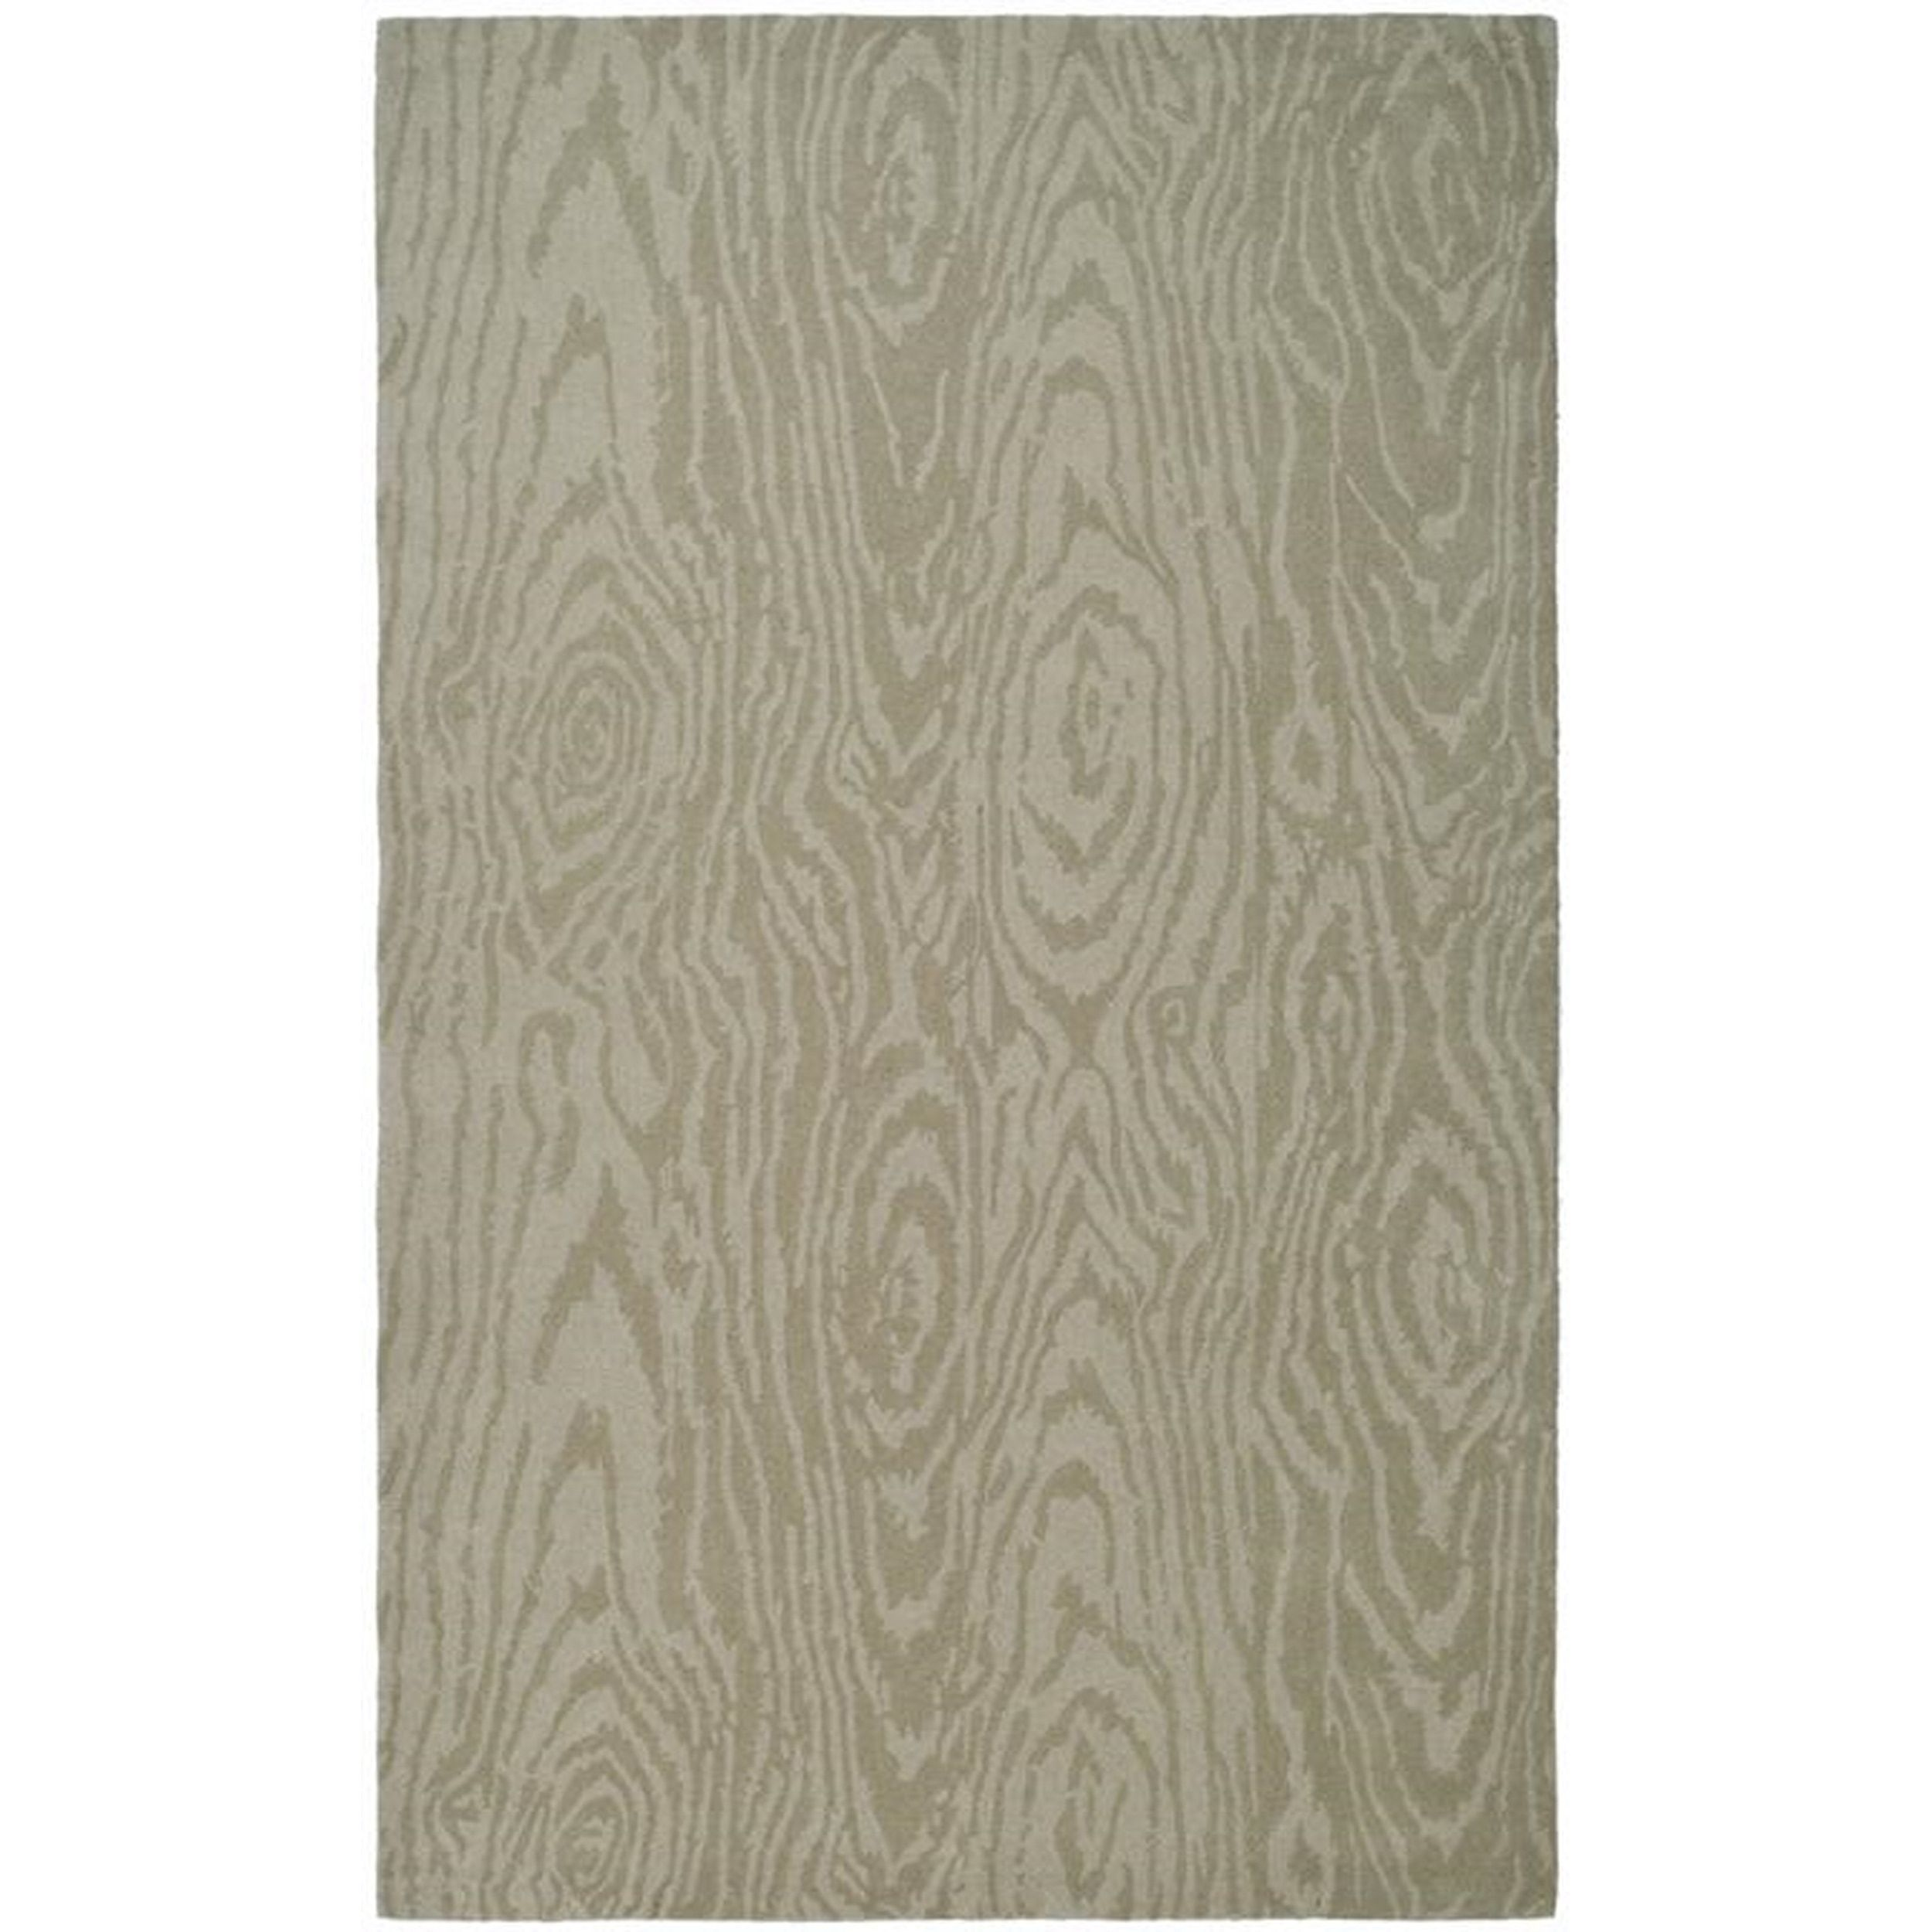 Martha stewart by safavieh layered faux bois potterus clay grey